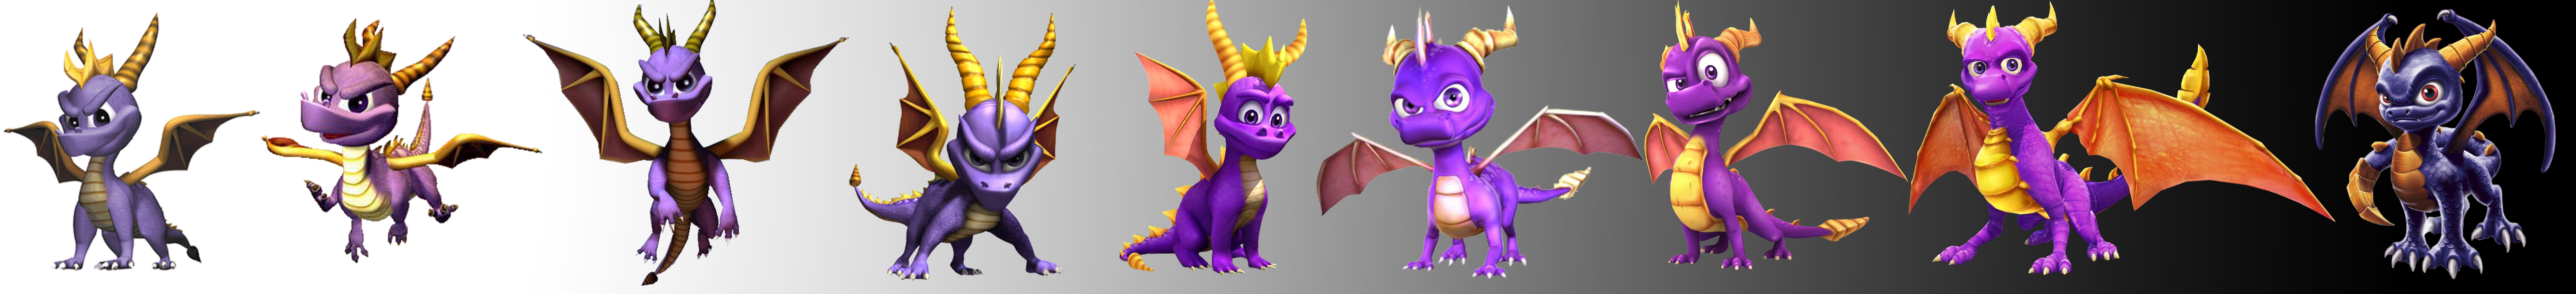 spyro evolution low poly pinterest evolution and low poly